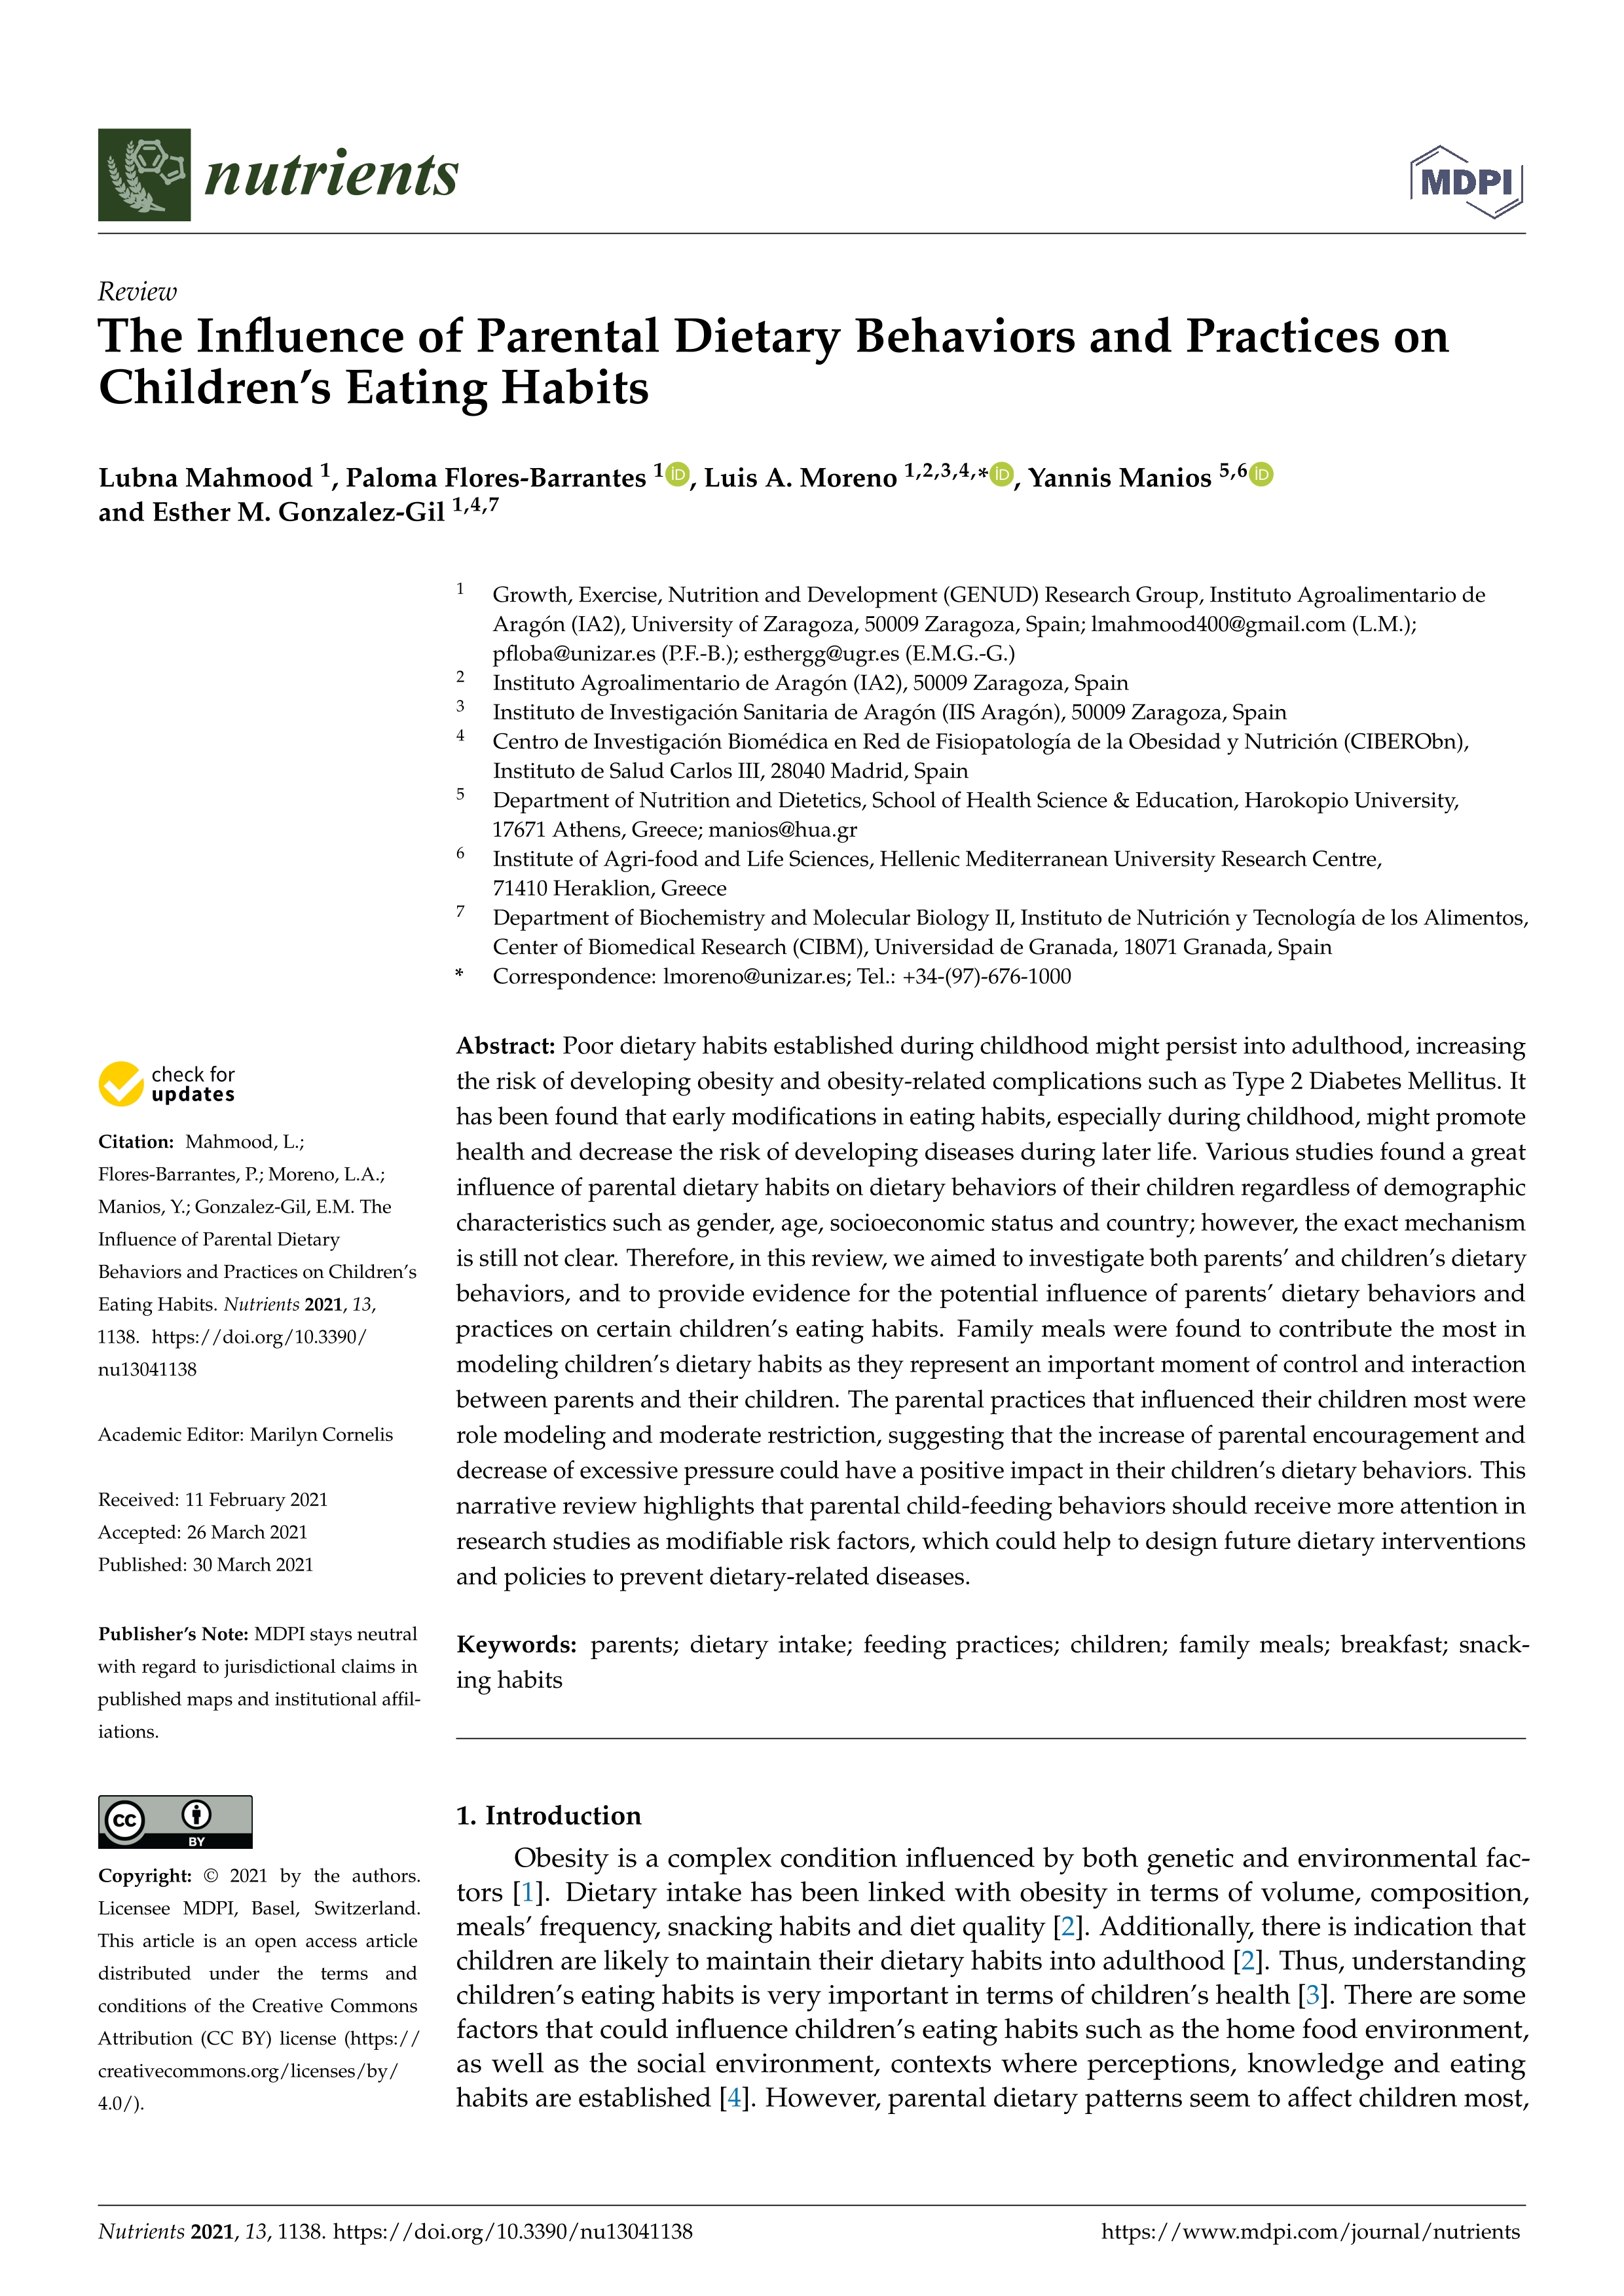 The influence of parental dietary behaviors and practices on children's eating habits